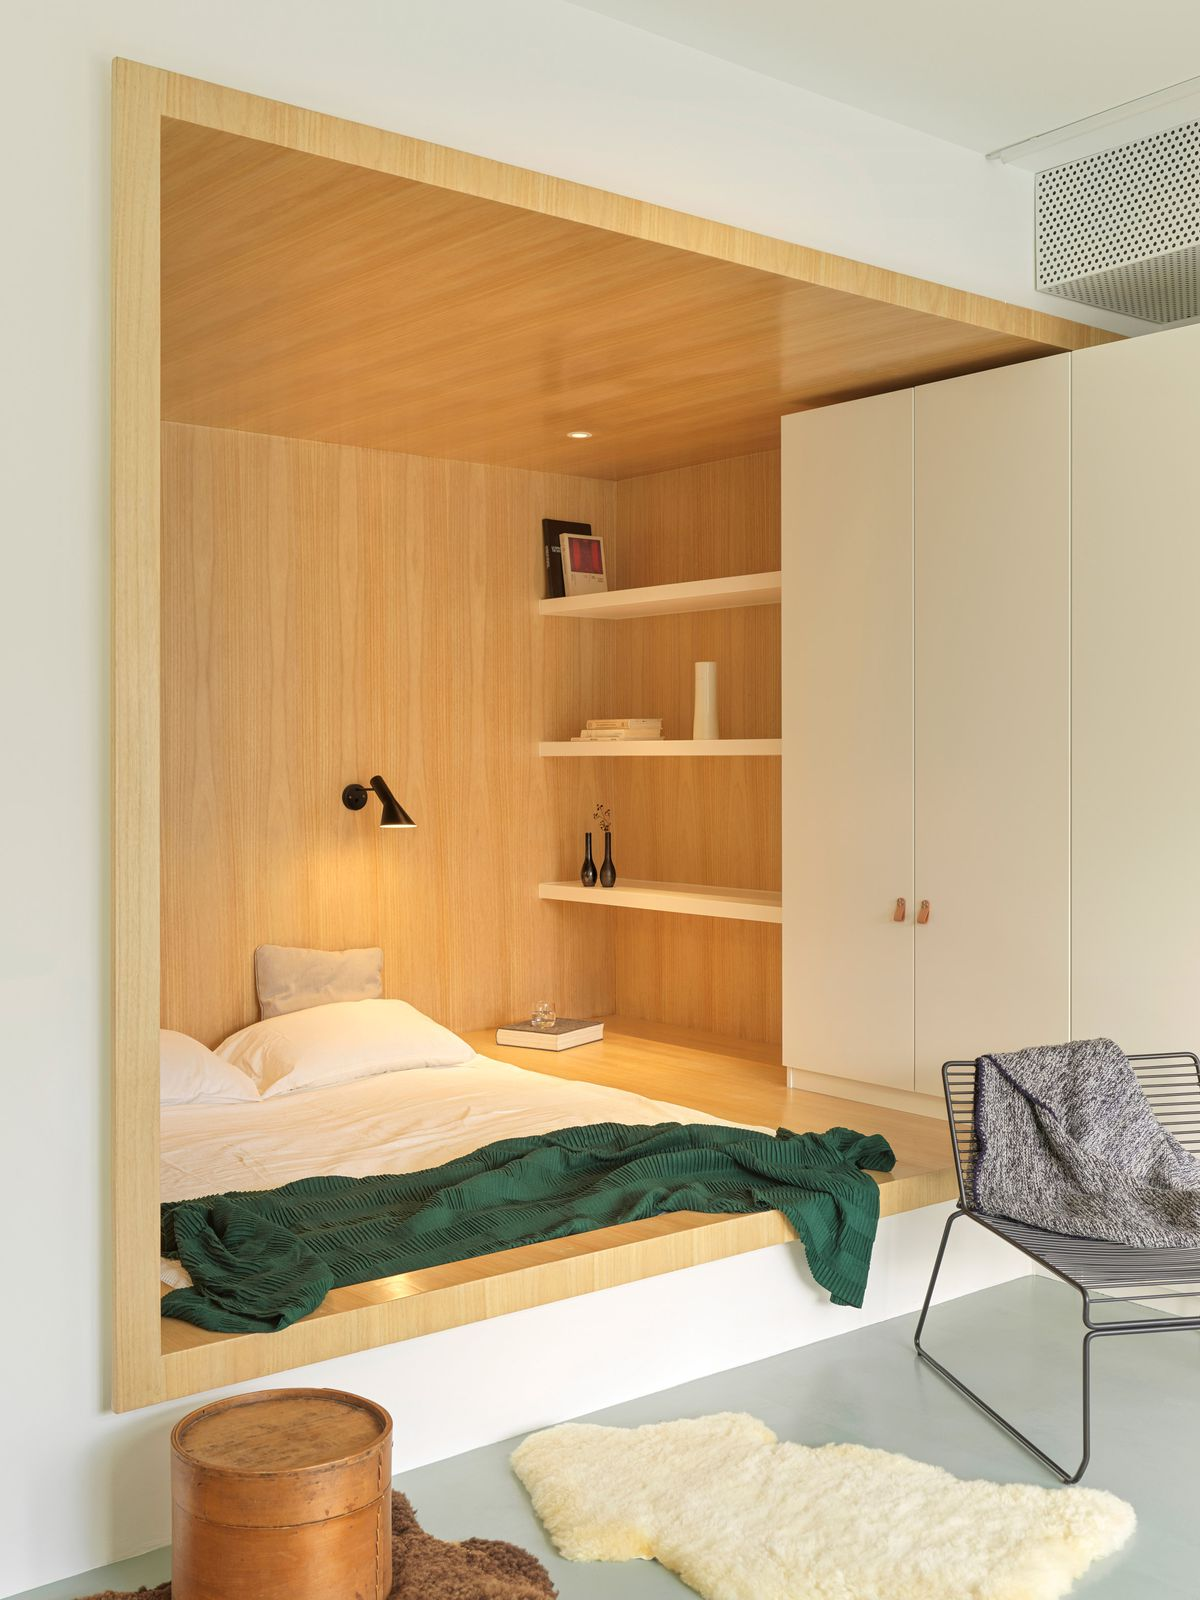 Bed in built-in nook with light timber walls.